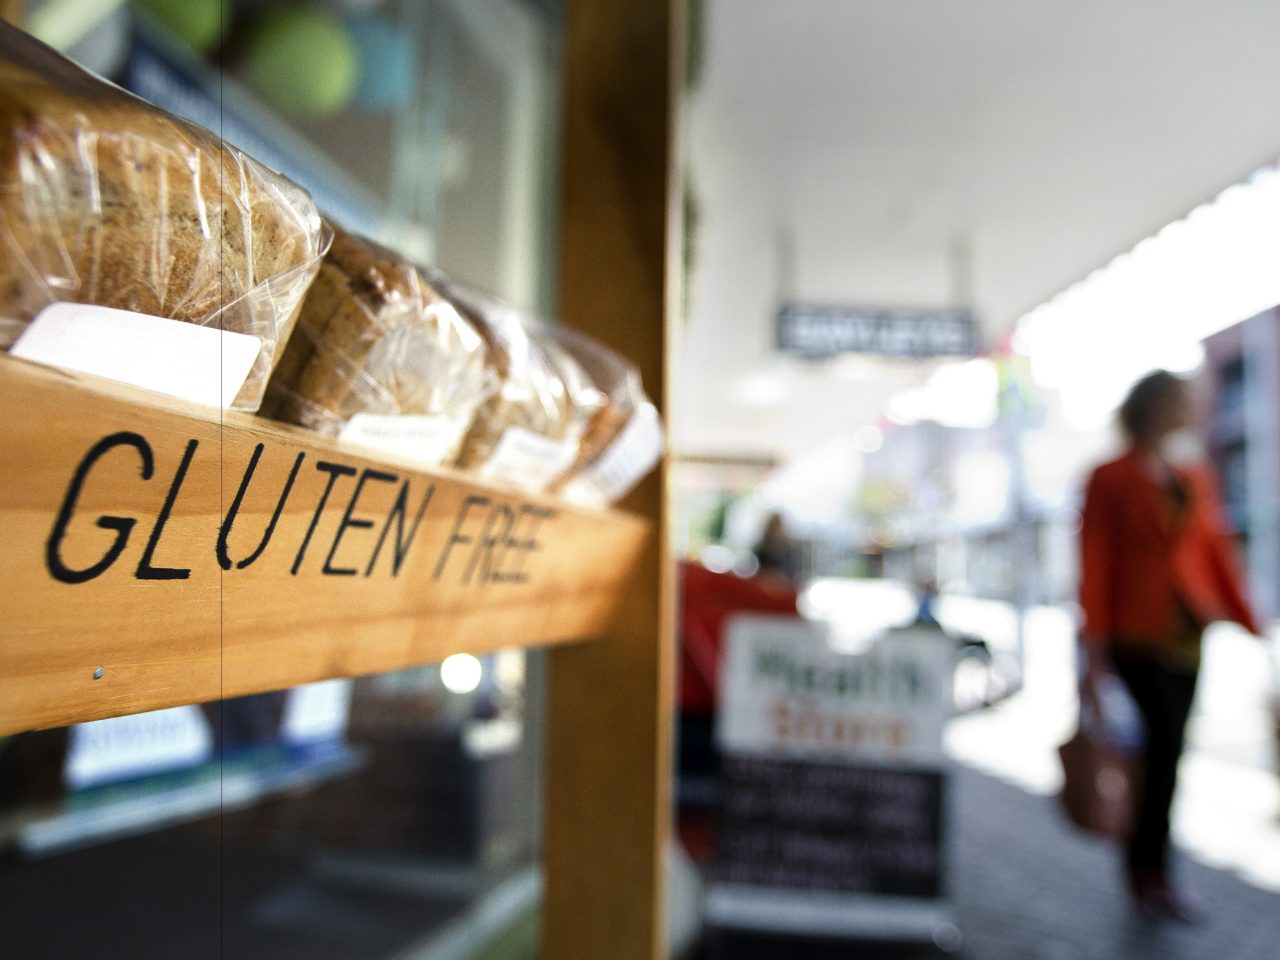 Here's the real reason your gluten-free diet might be making you feel better